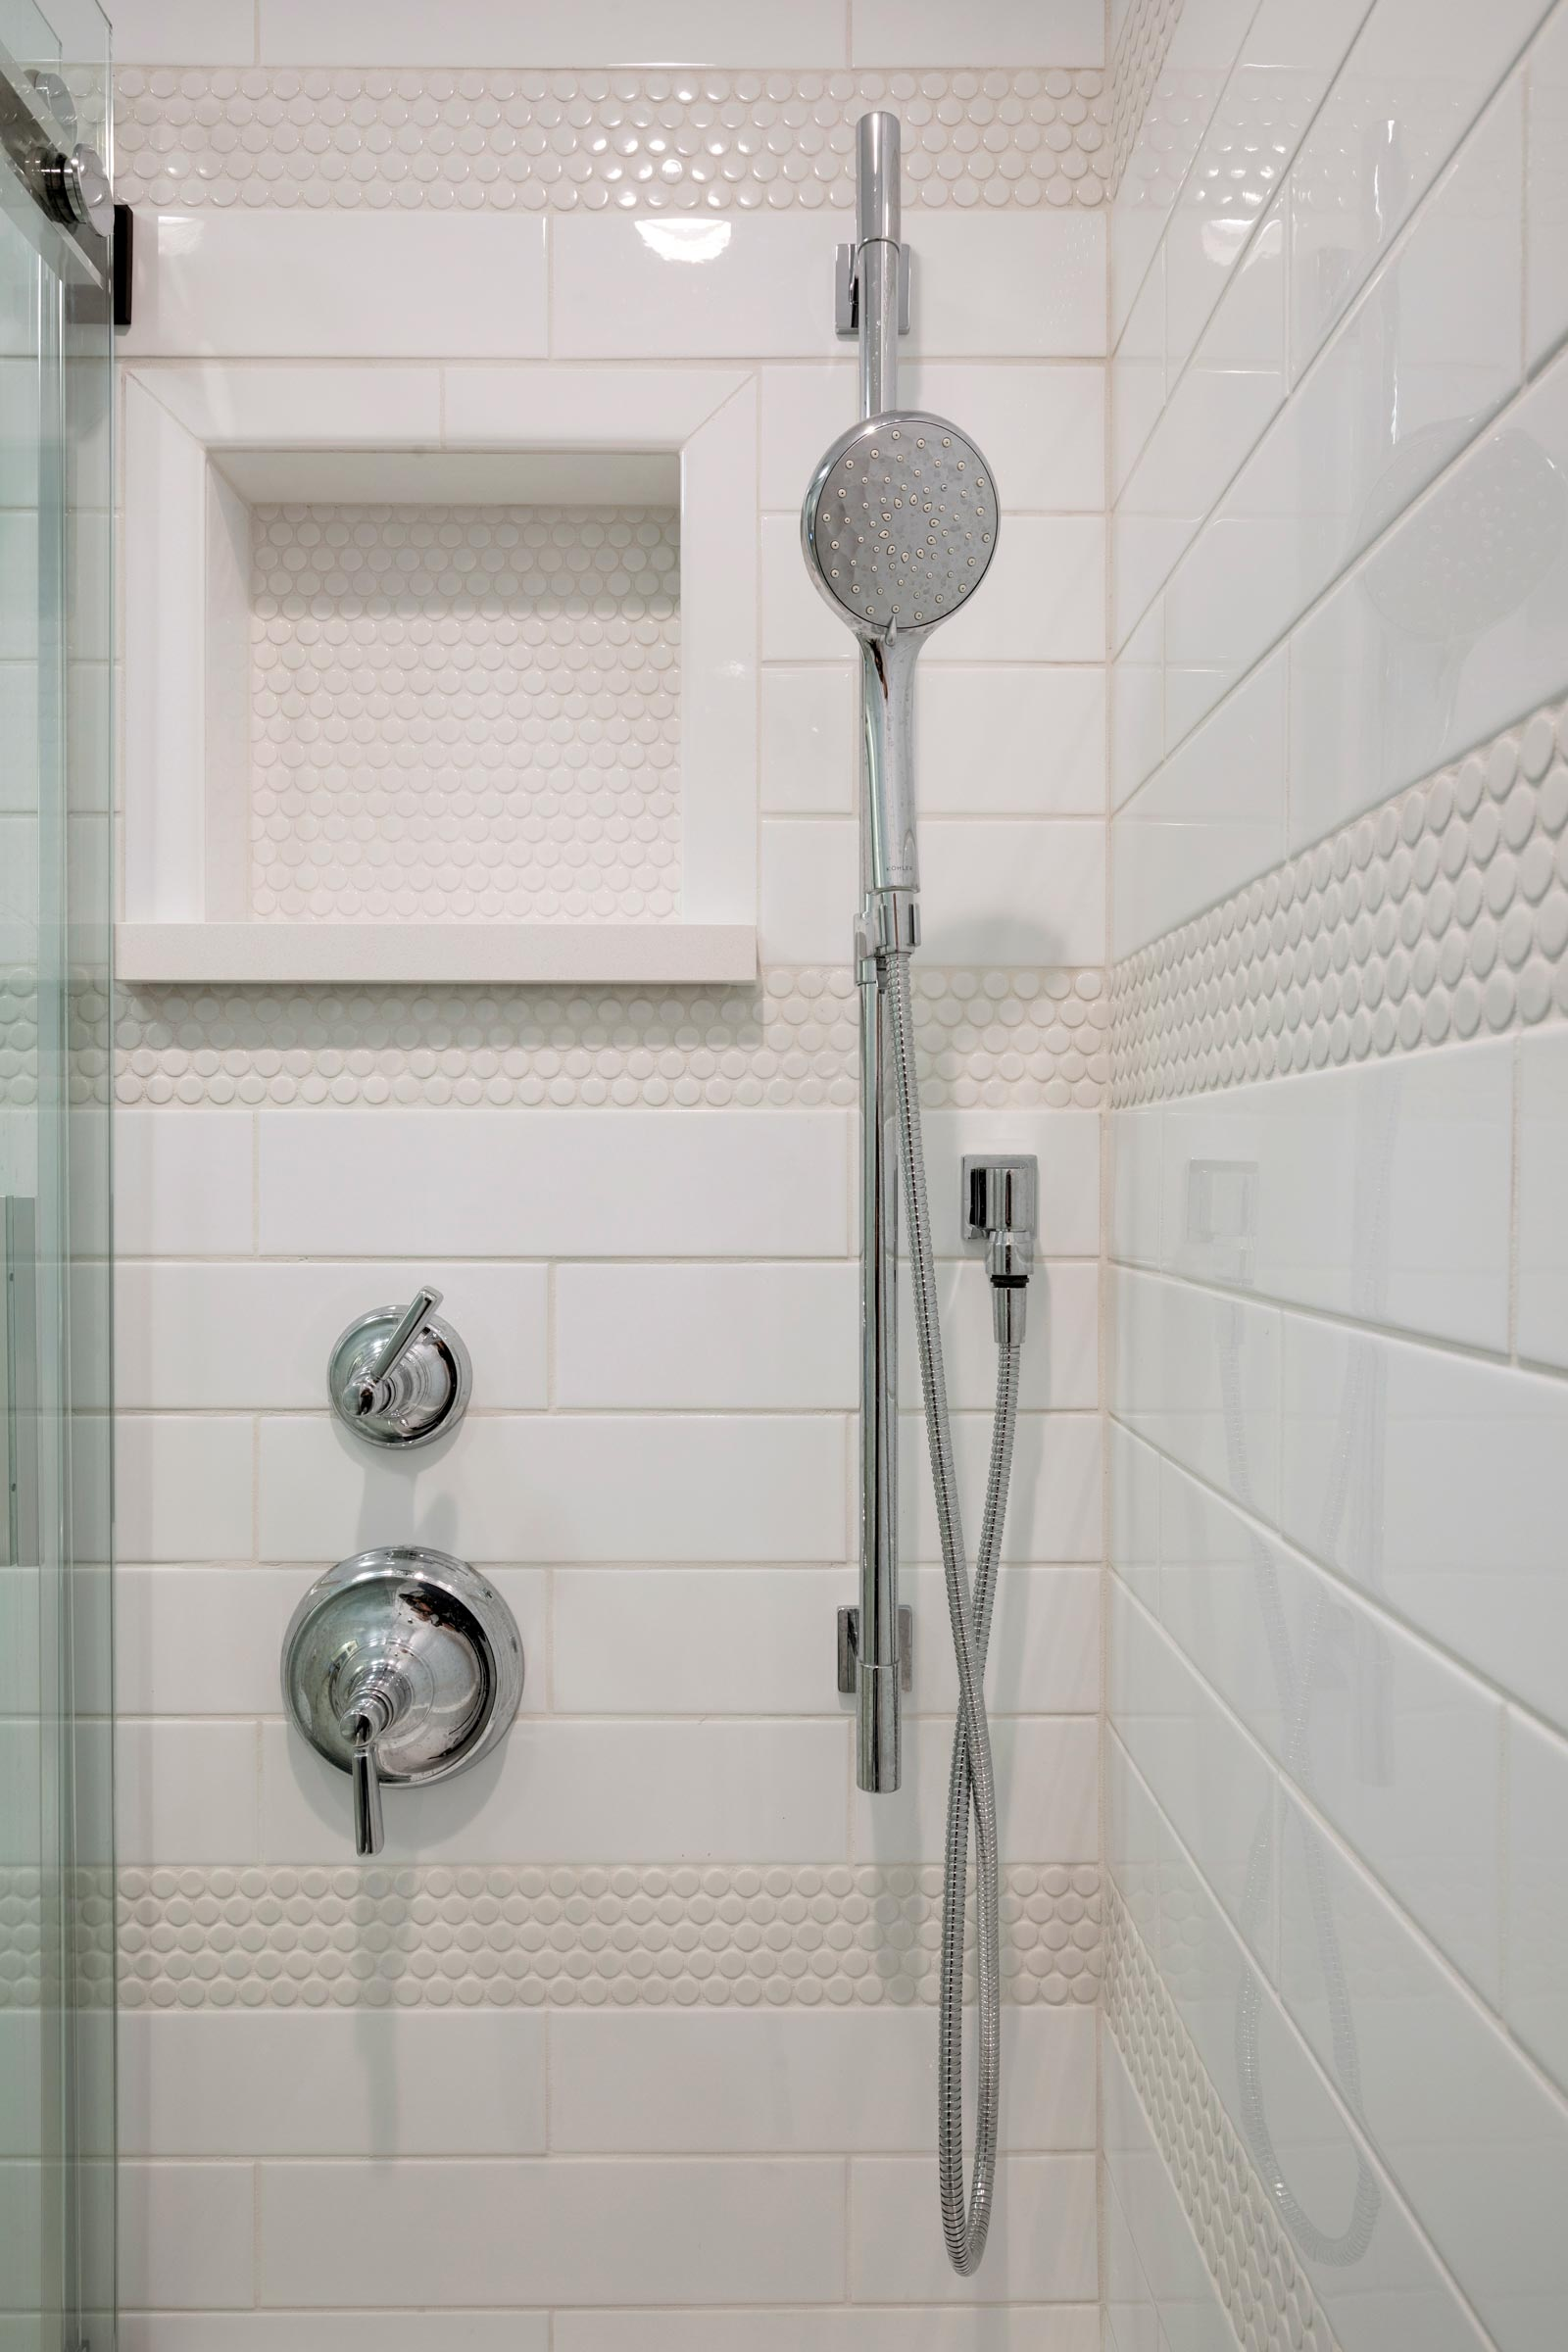 Bath and shower design for teenage girl, white tiling, silver shower head and faucet - Maven Design Studio